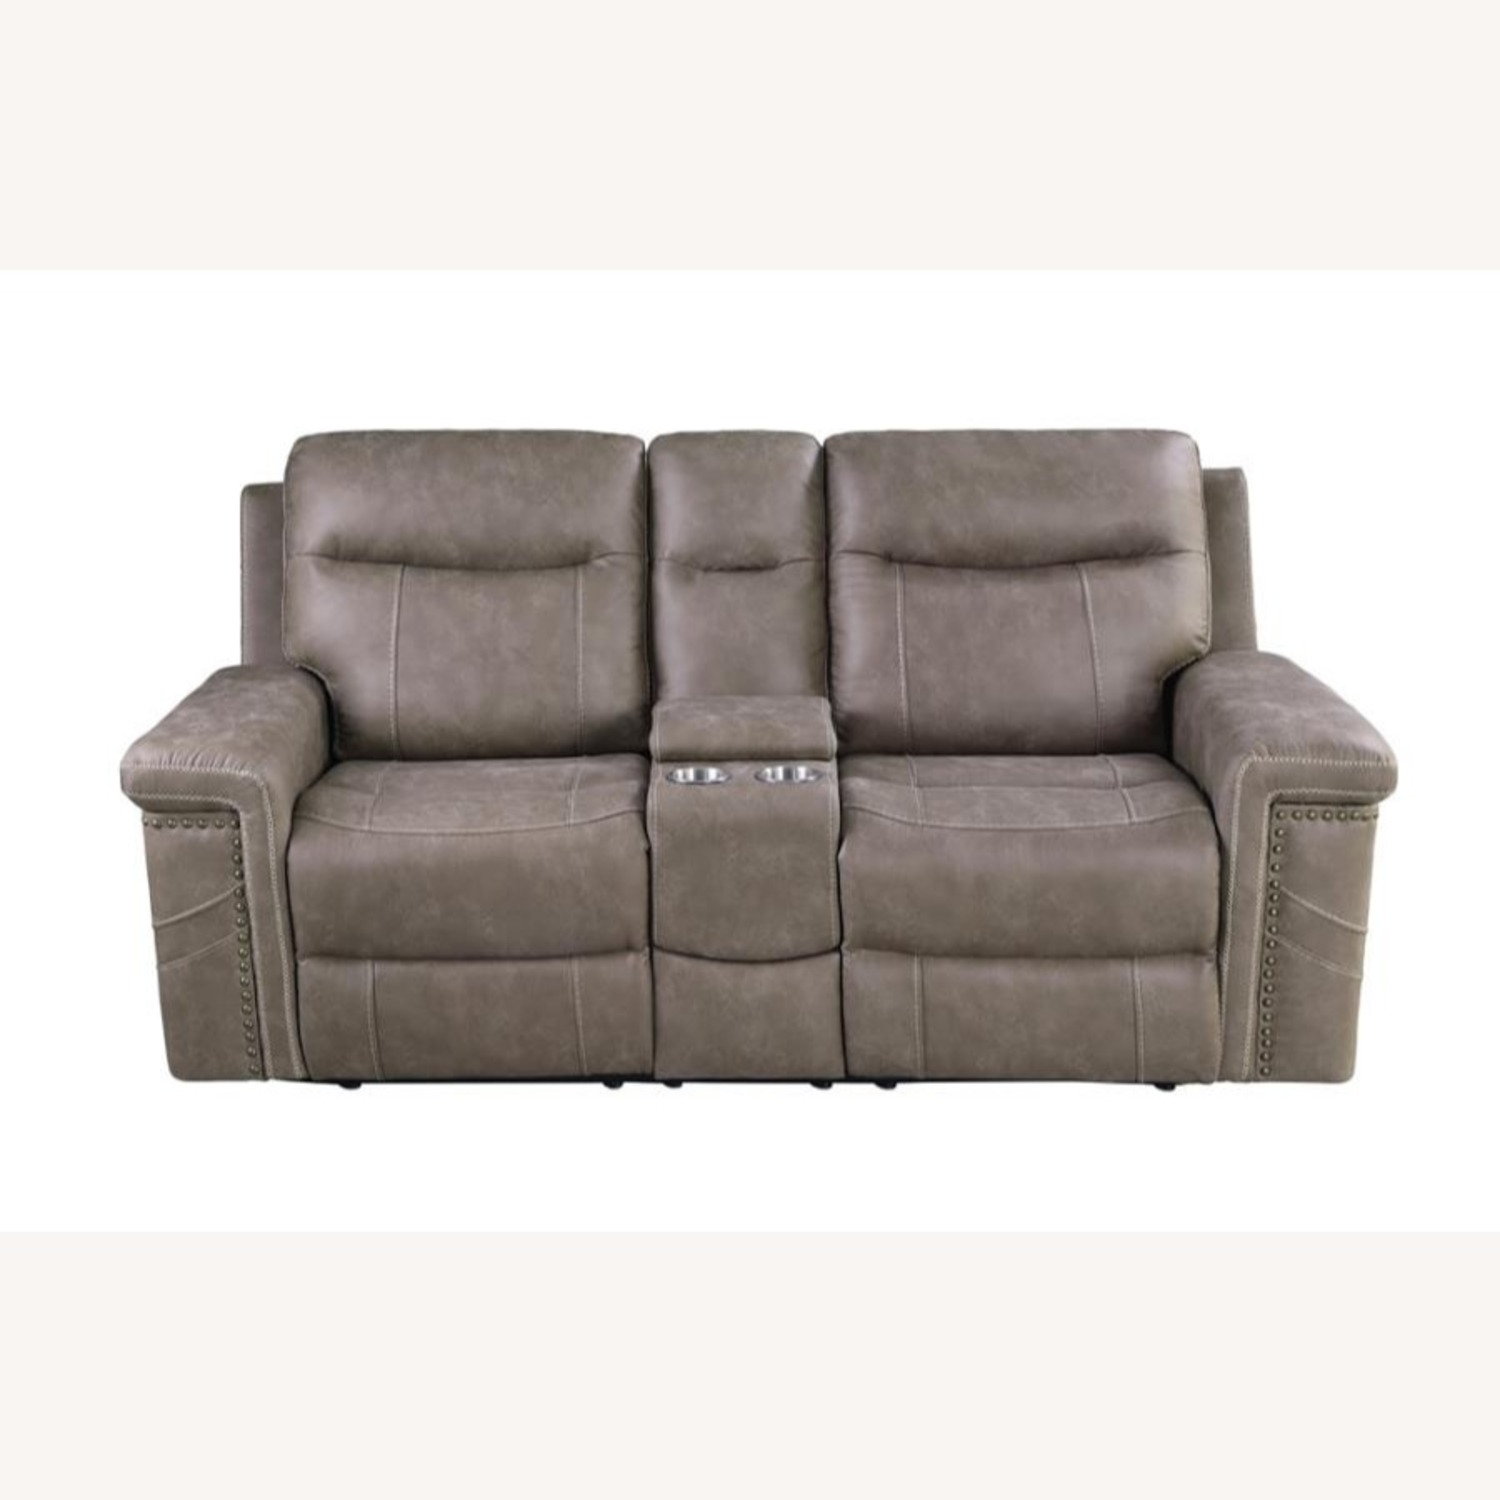 Power Loveseat Recliner In Taupe Upholstery - image-2